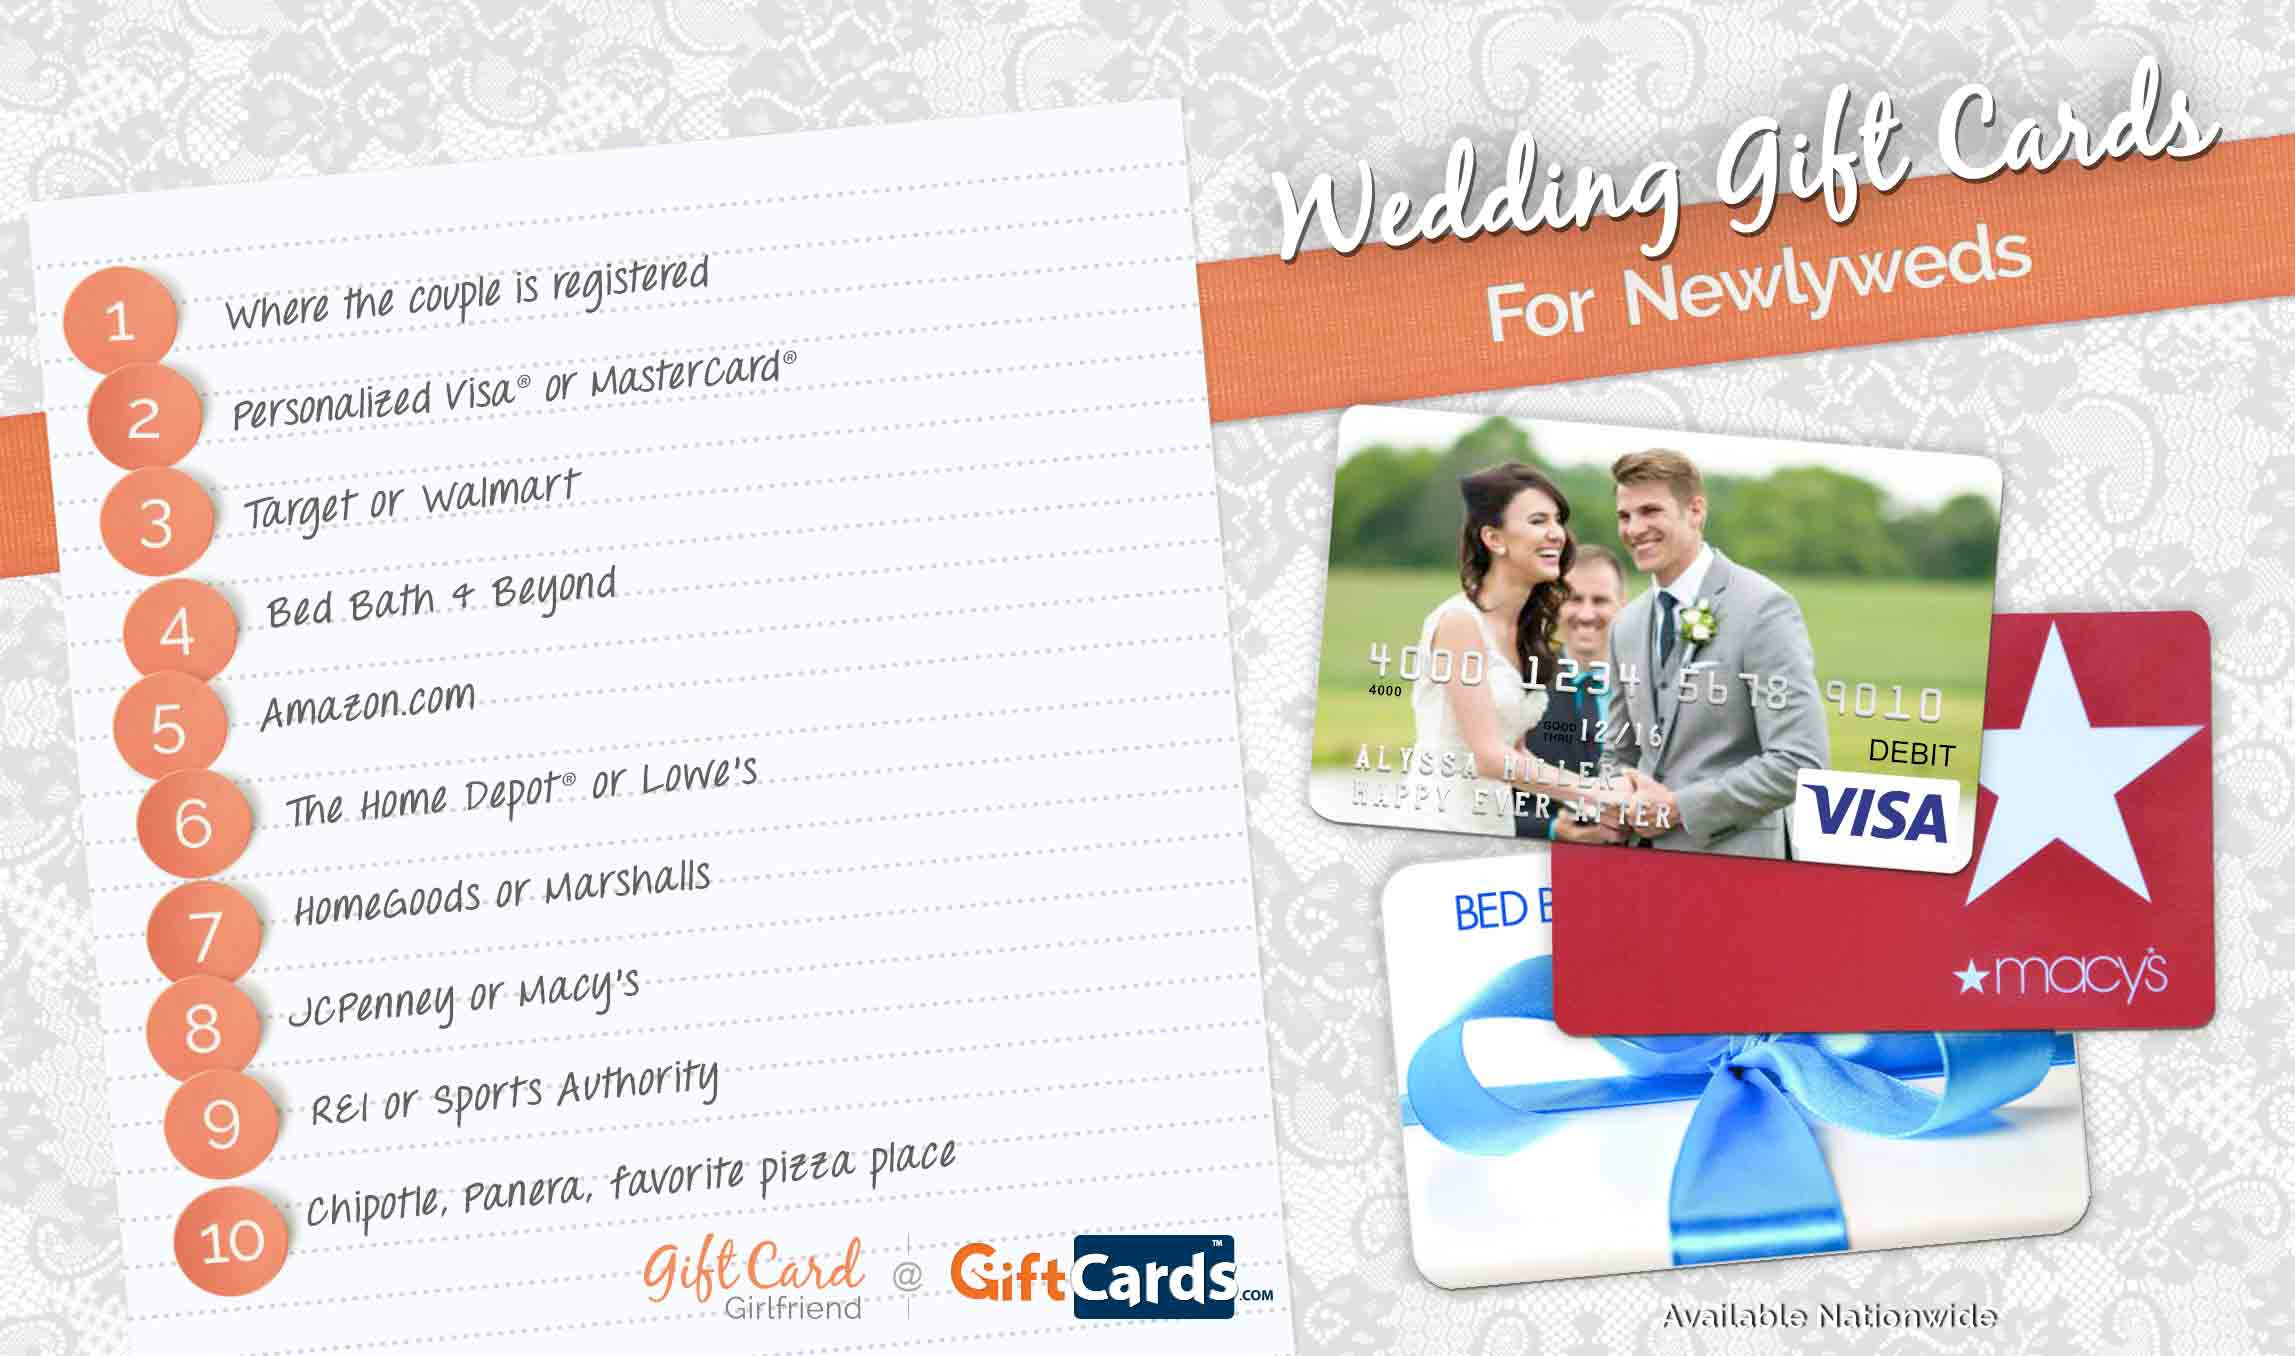 Wedding Gift Cards Online: Top 10 Wedding Gift Cards To Buy For Newlyweds